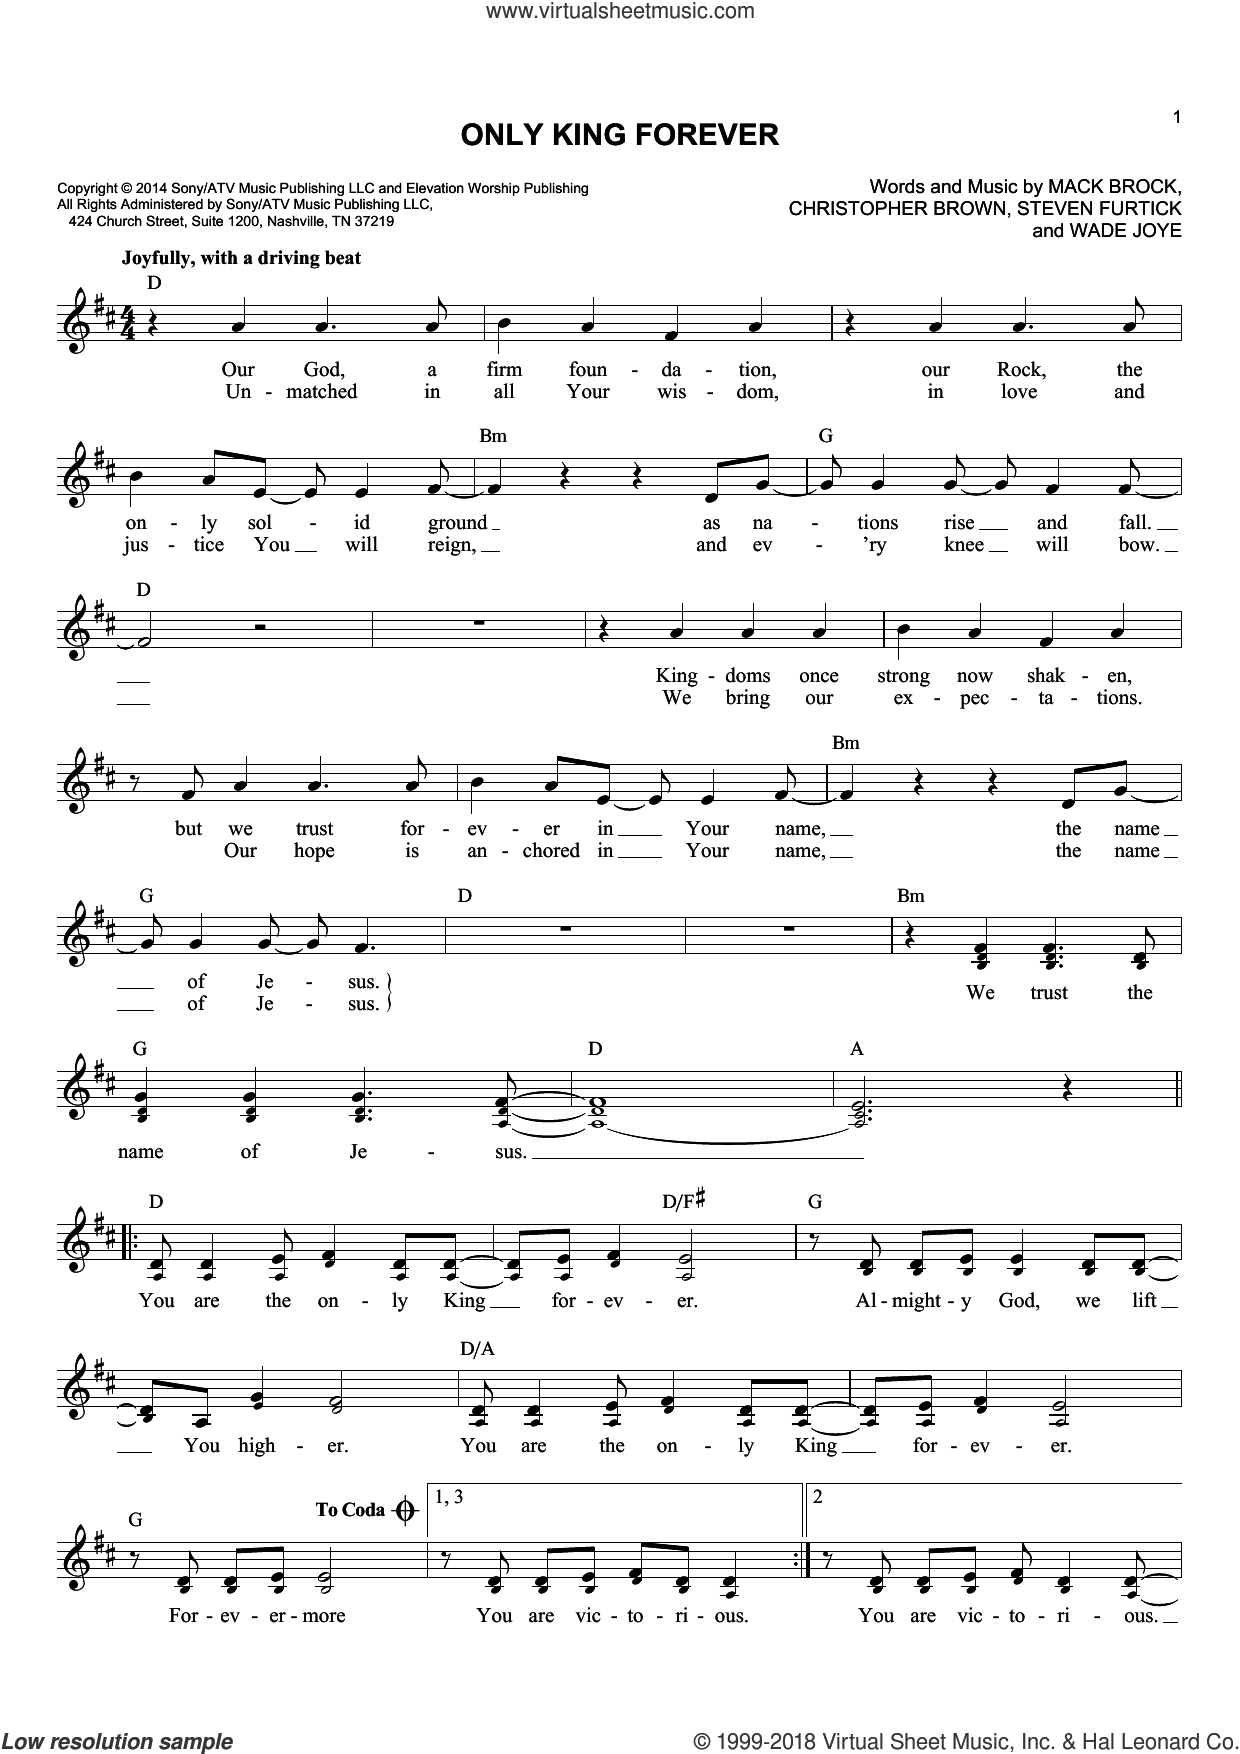 Only King Forever sheet music for voice and other instruments (fake book) by Elevation Worship, Chris Brown, Mack Brock, Steven Furtick and Wade Joye, intermediate skill level